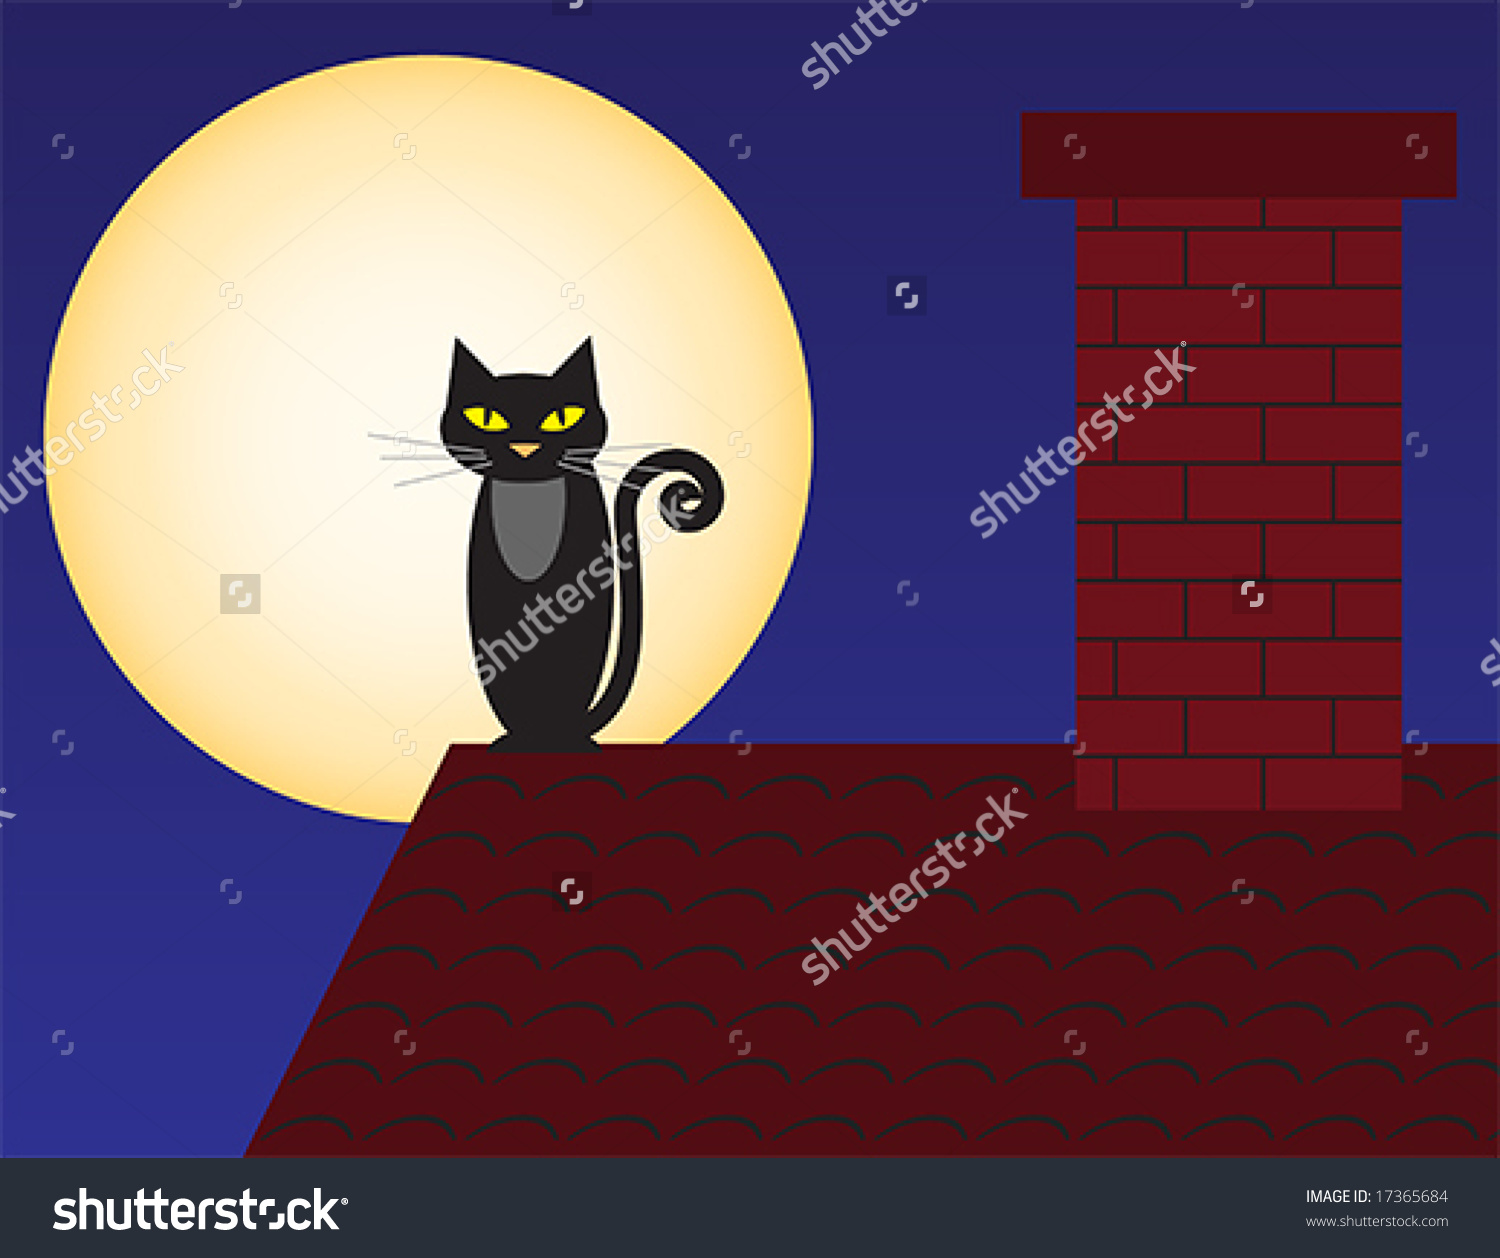 Vector Illustration Of A Cat On The Roof Against The Full Moon.